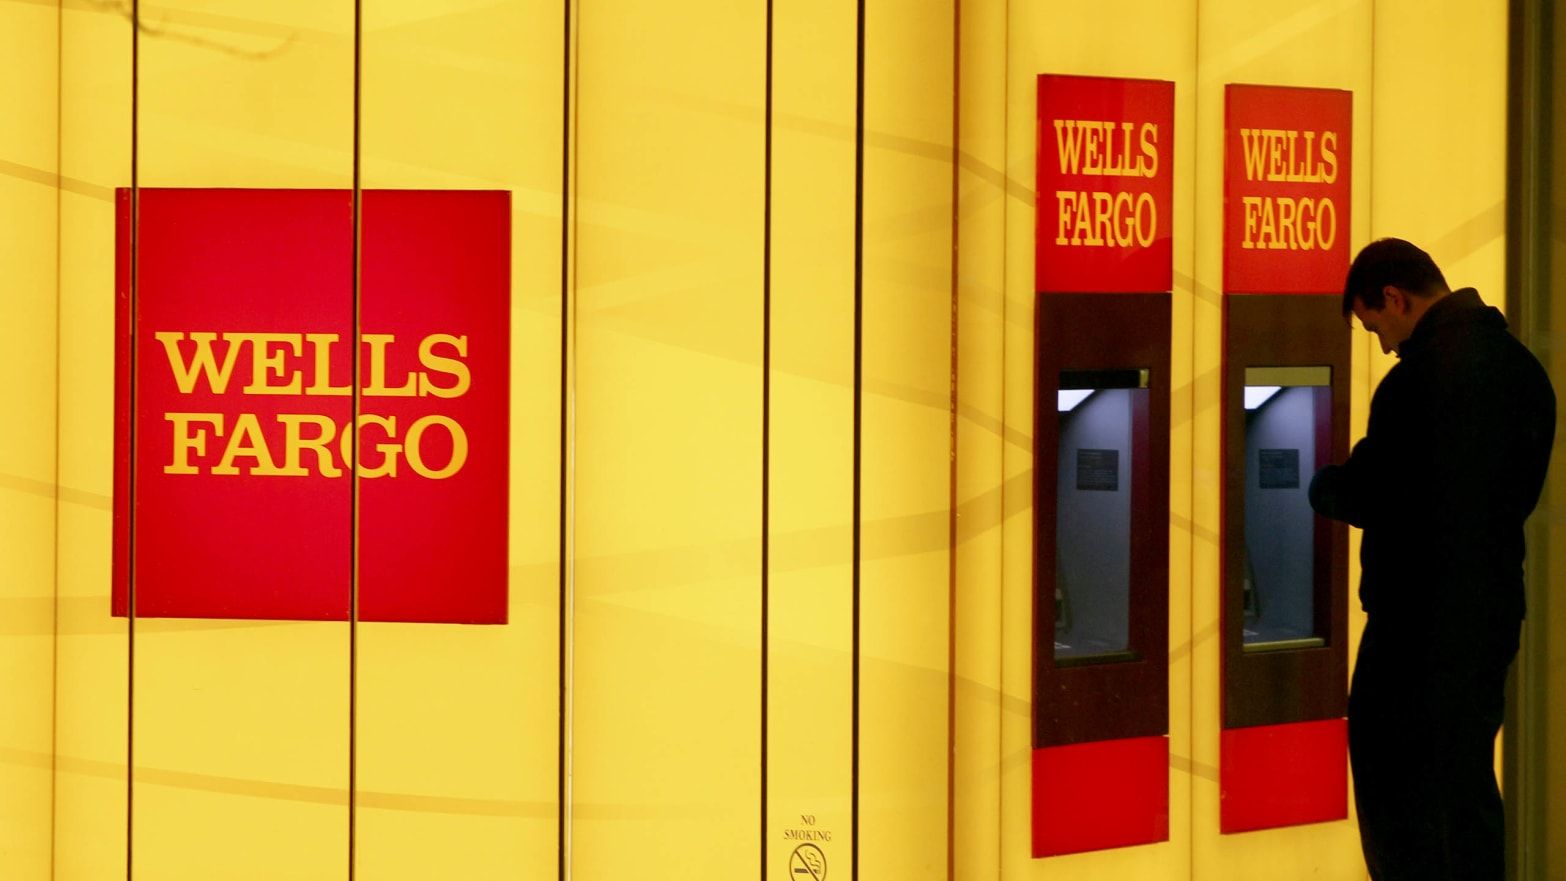 The Fed Closes In on Wells Fargo